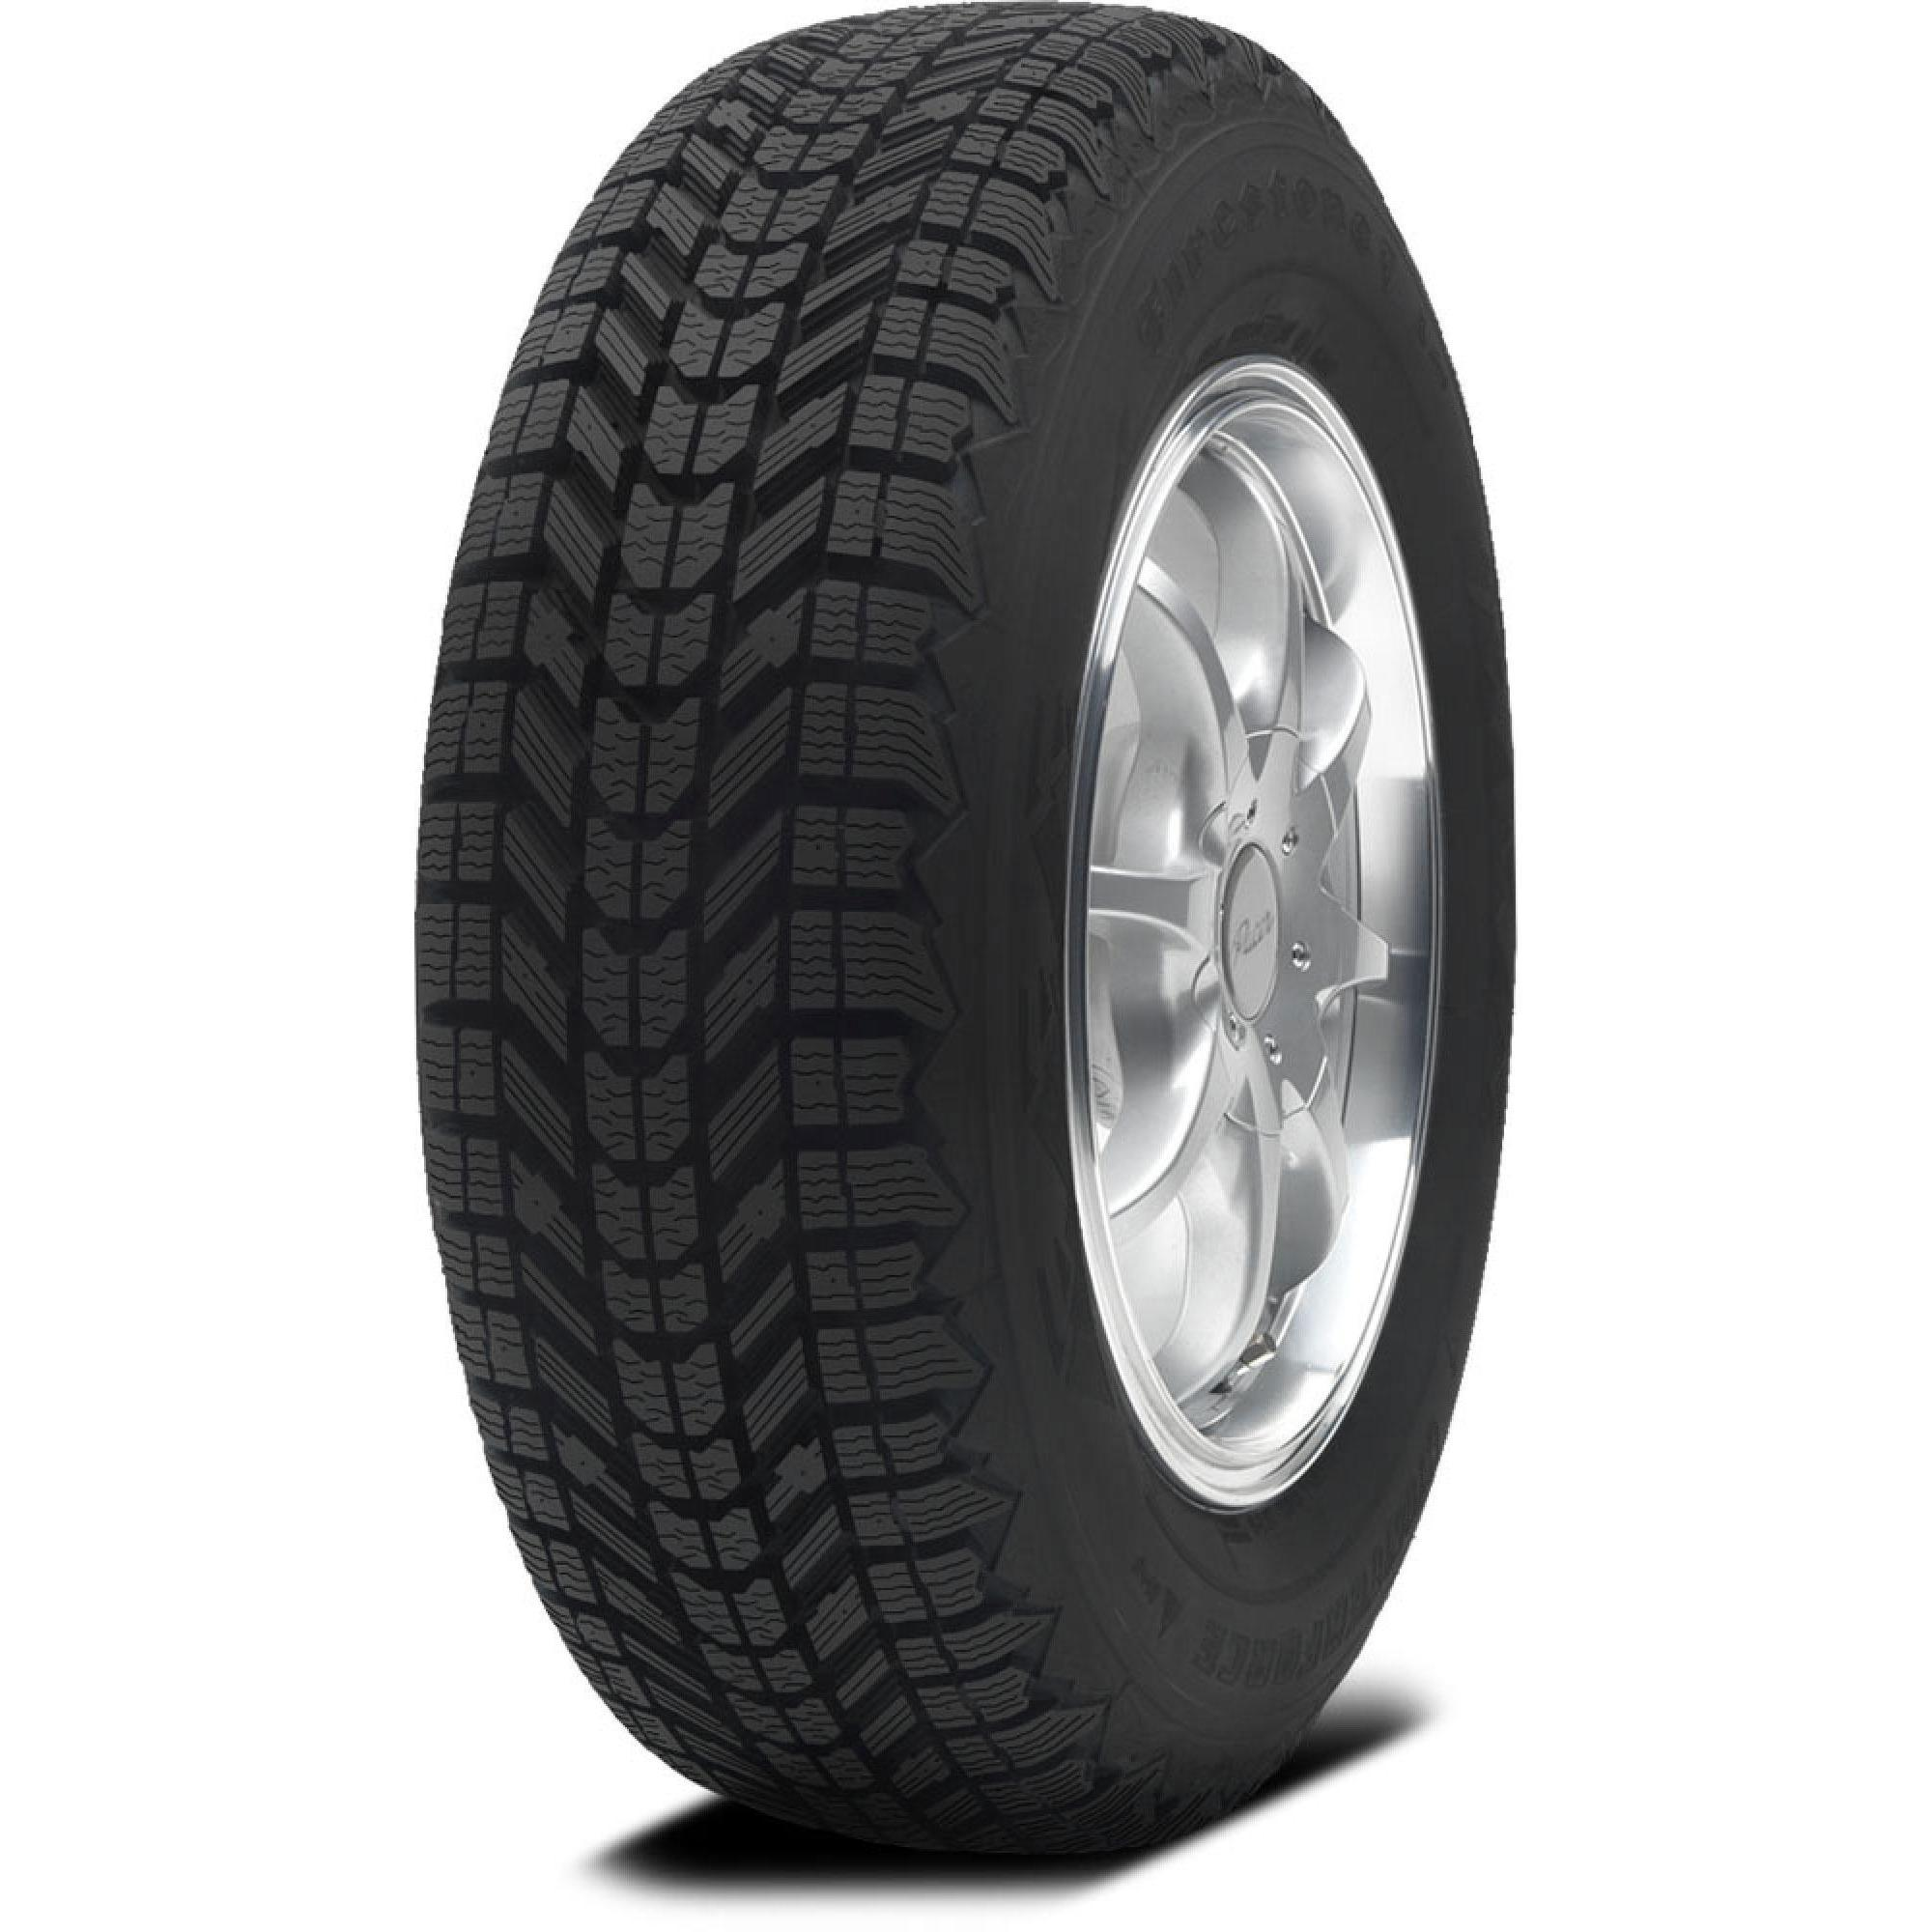 Firestone Winterforce Tires >> Firestone Winterforce | TireBuyer